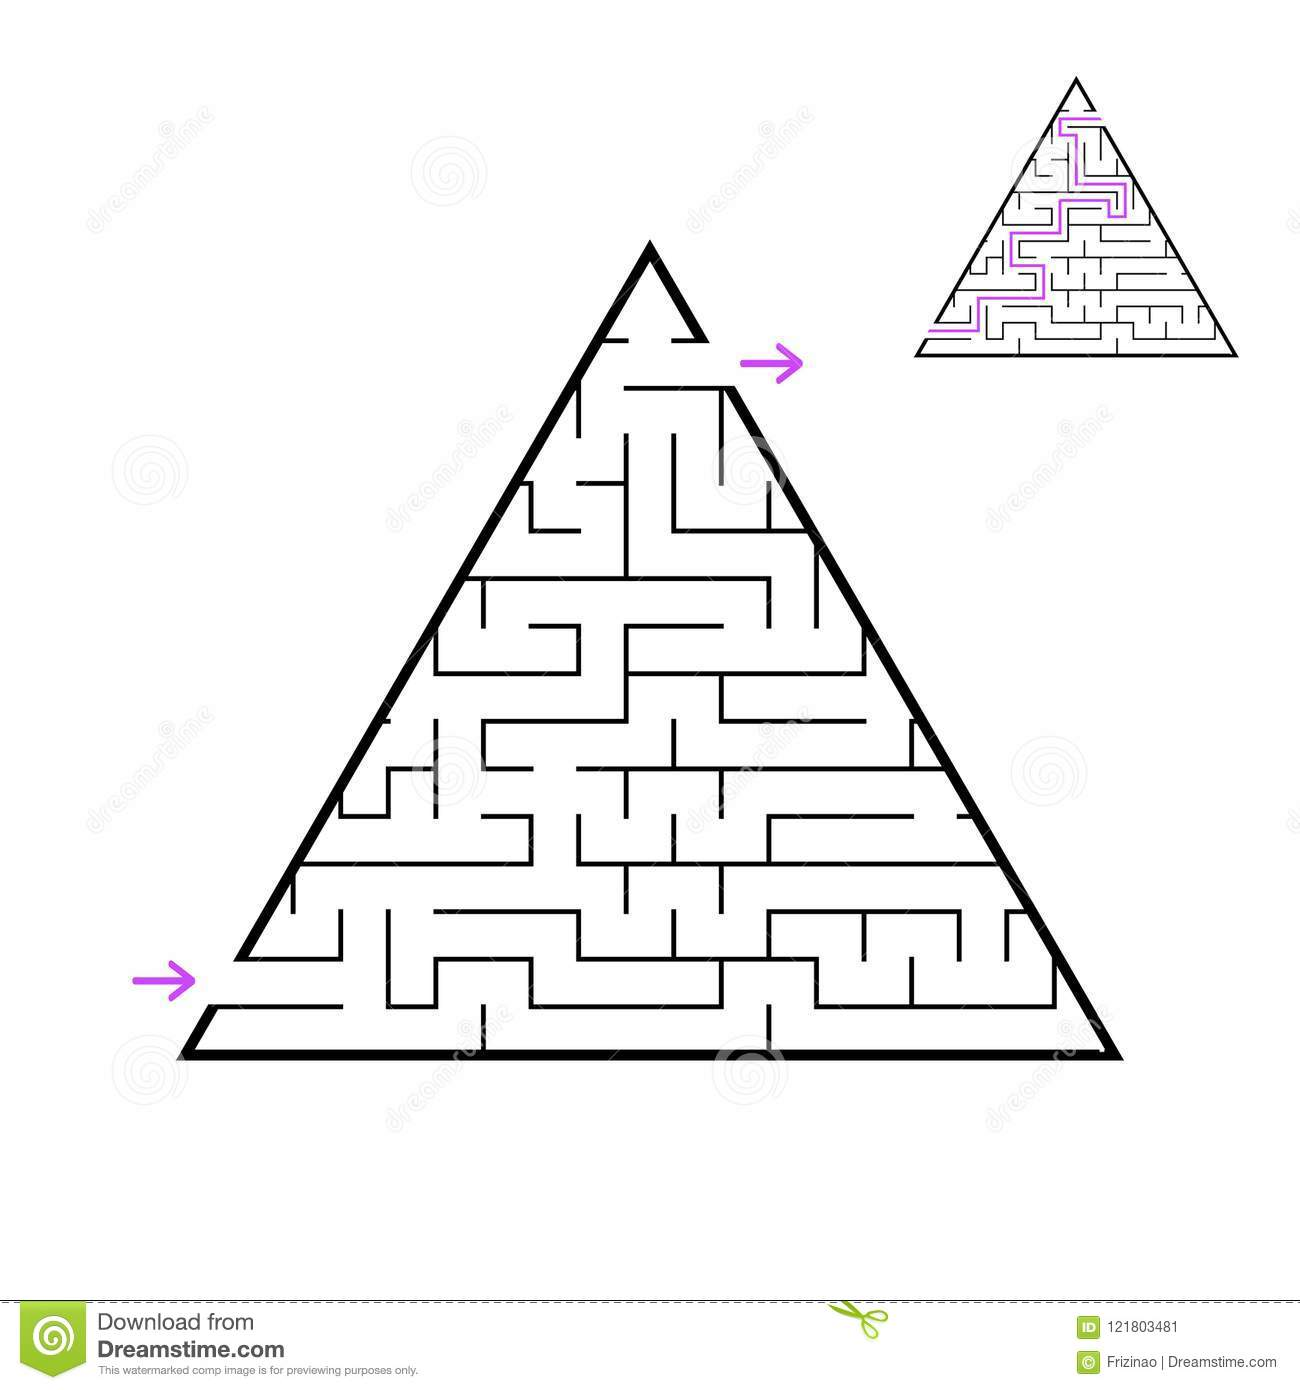 A Triangular Labyrinth A Pyramid With A Black Stroke A